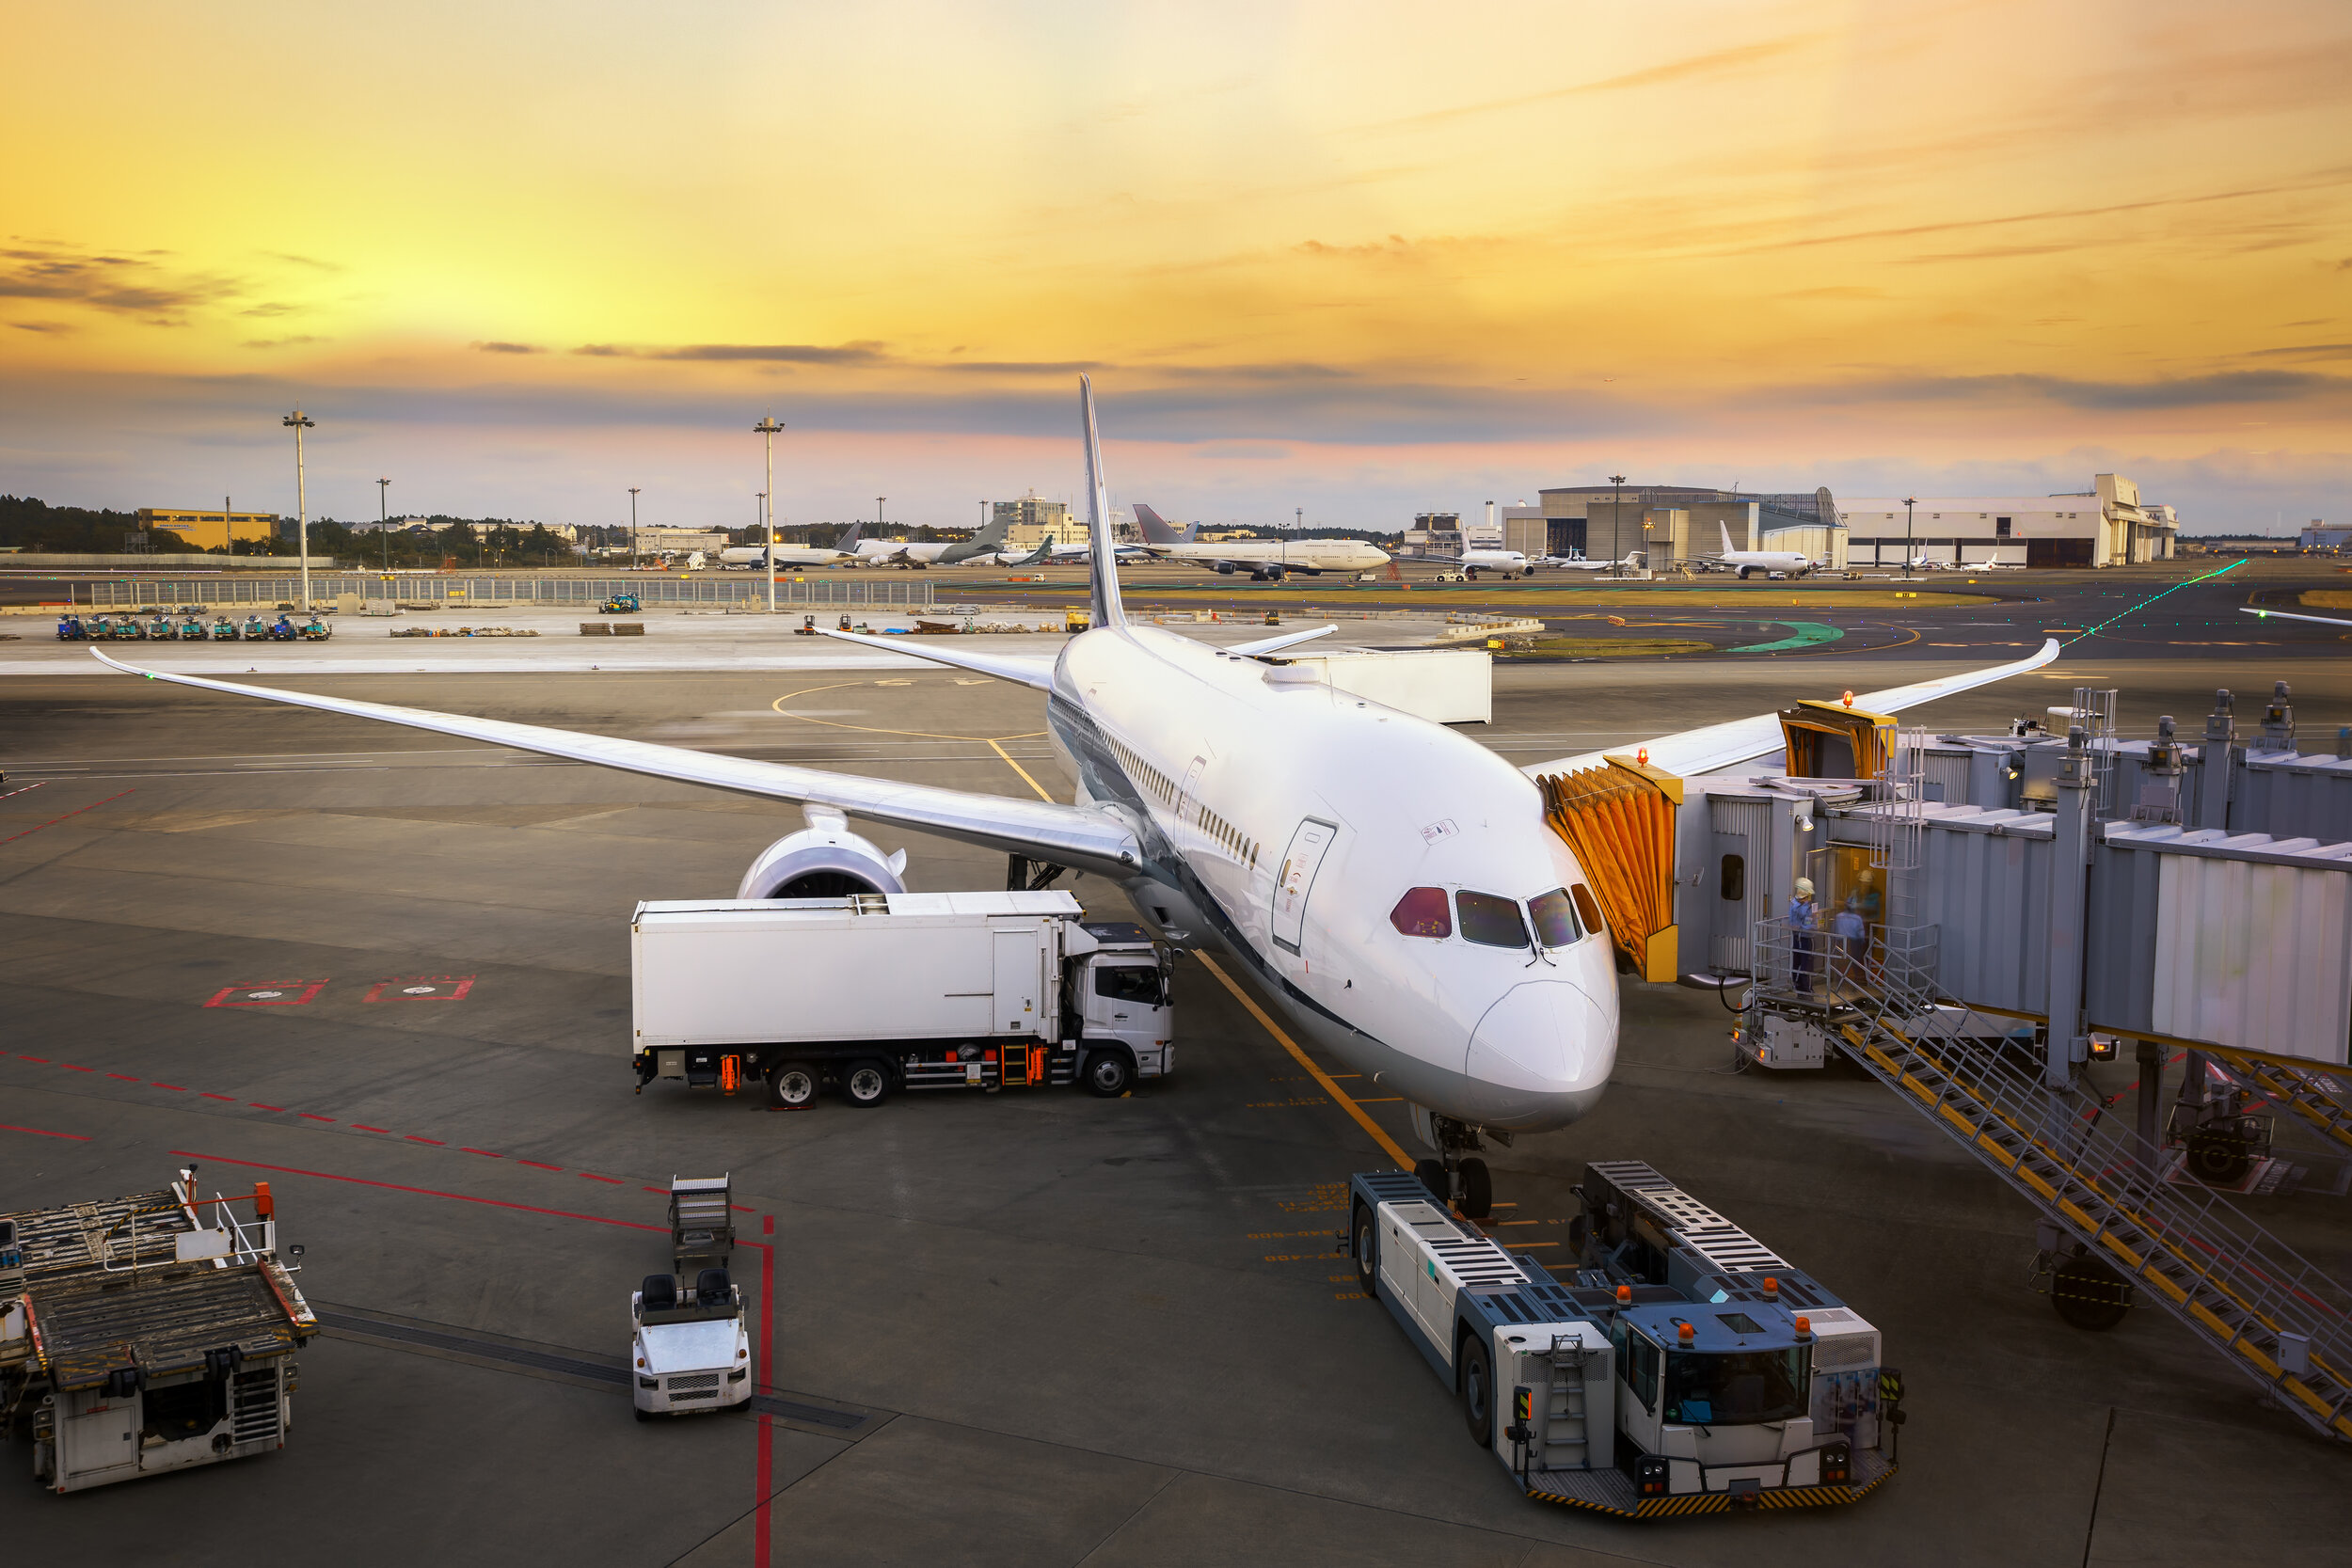 Level 2, Reduction - To become accredited at Level 2, airports also need to formulate an emissions reduction target, demonstrate emission reductions, and develop a carbon management plan.